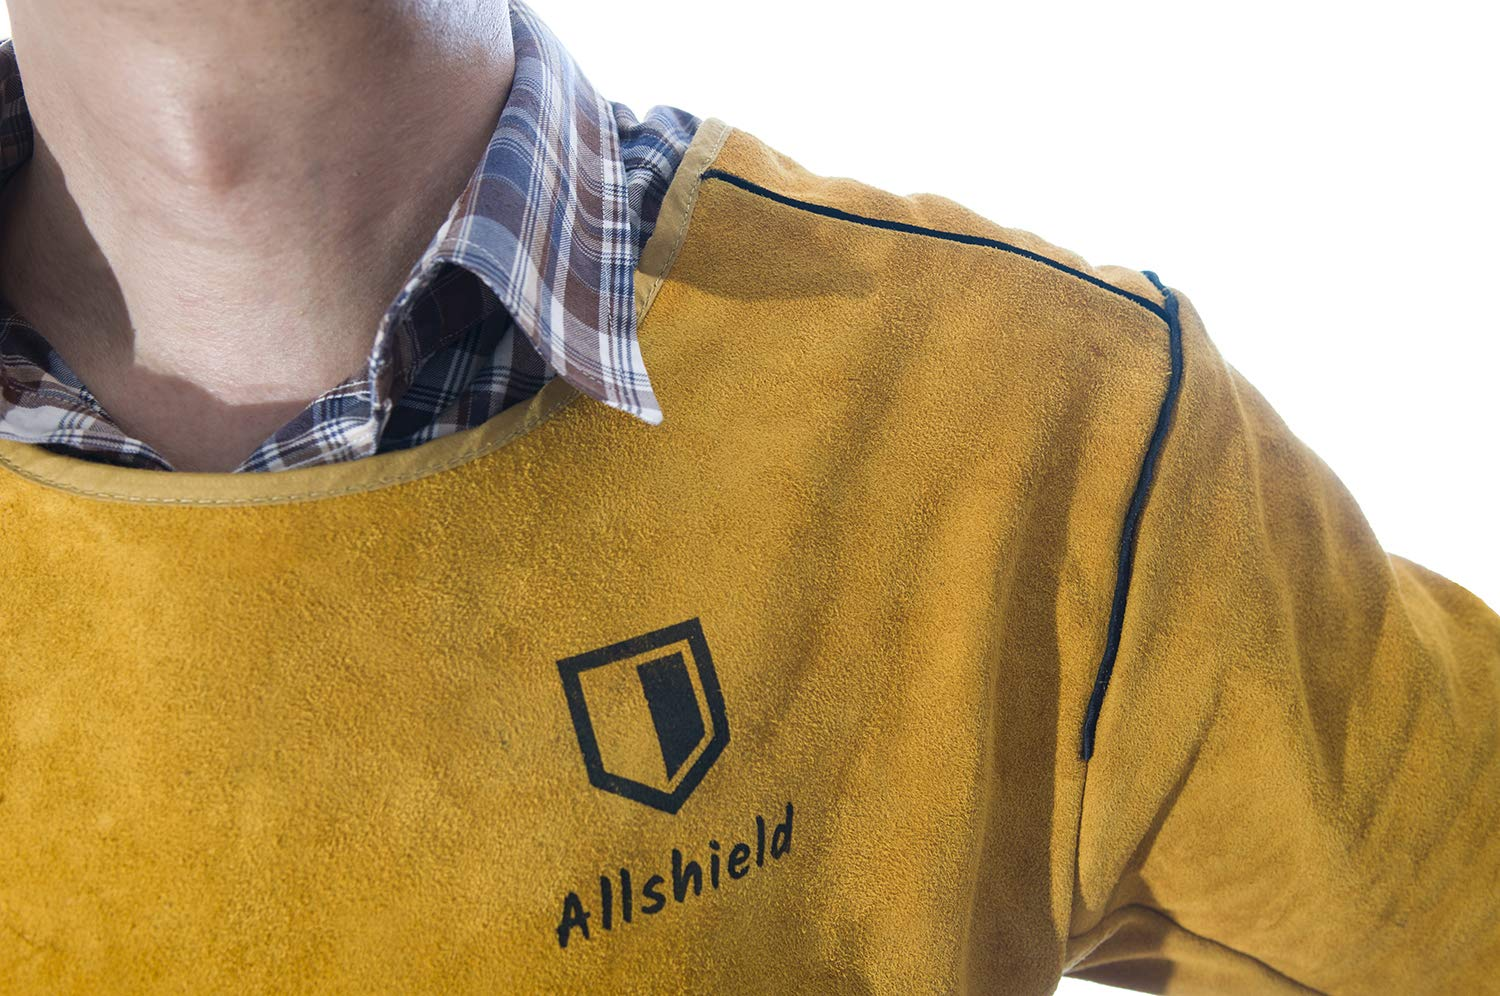 Allshield A44-1874 Welding leather Clothes Coat with Sleeves by Allshield (Image #7)